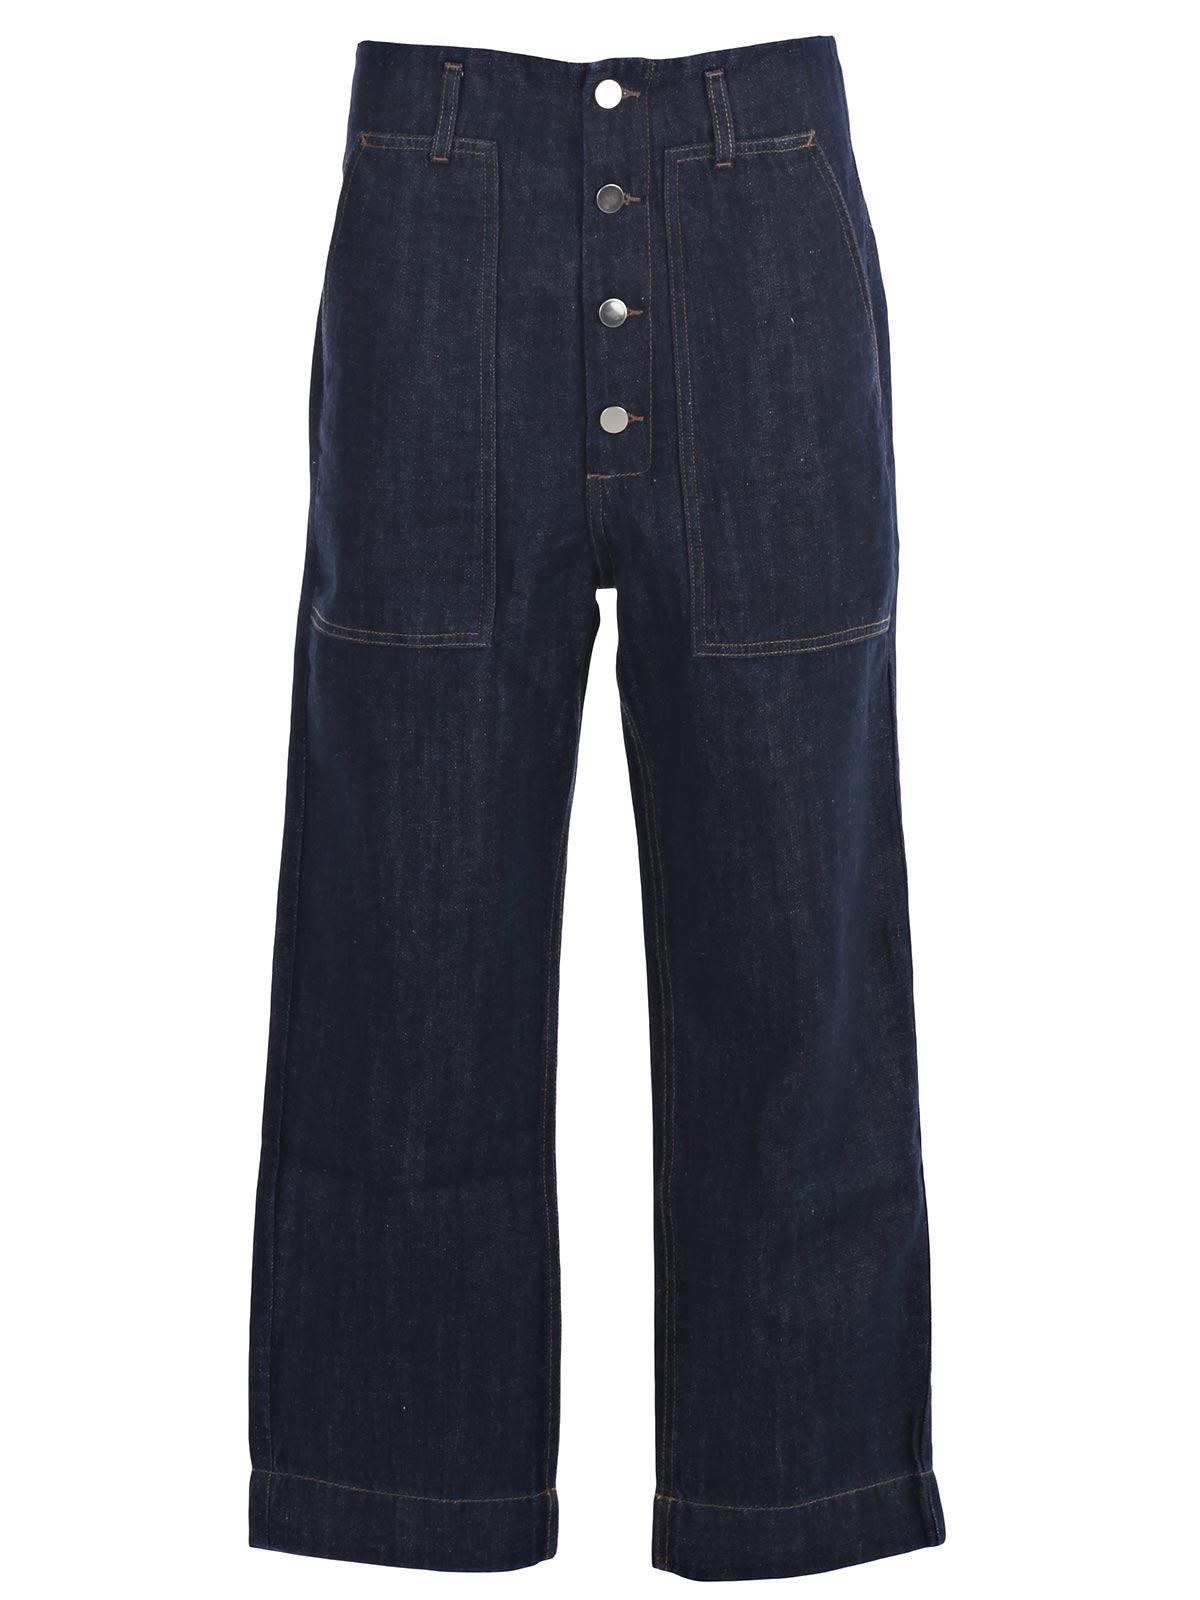 Picture of SOFIE D'HOORE JEANS